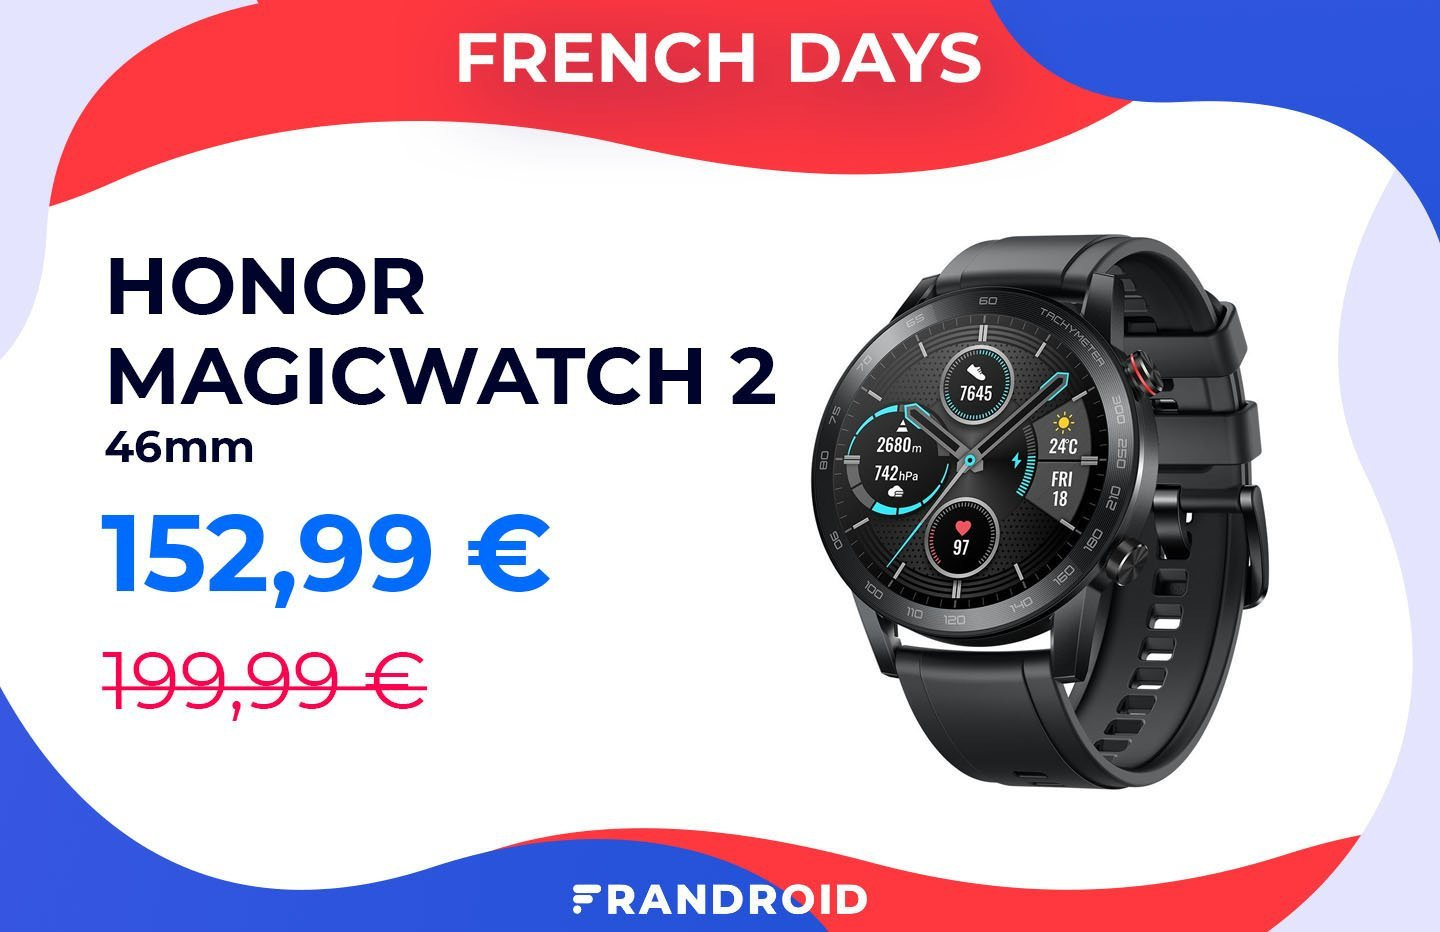 Honor MagicWatch 2 : le clone abordable de la Huawei Watch GT 2 avec 50 € de remise